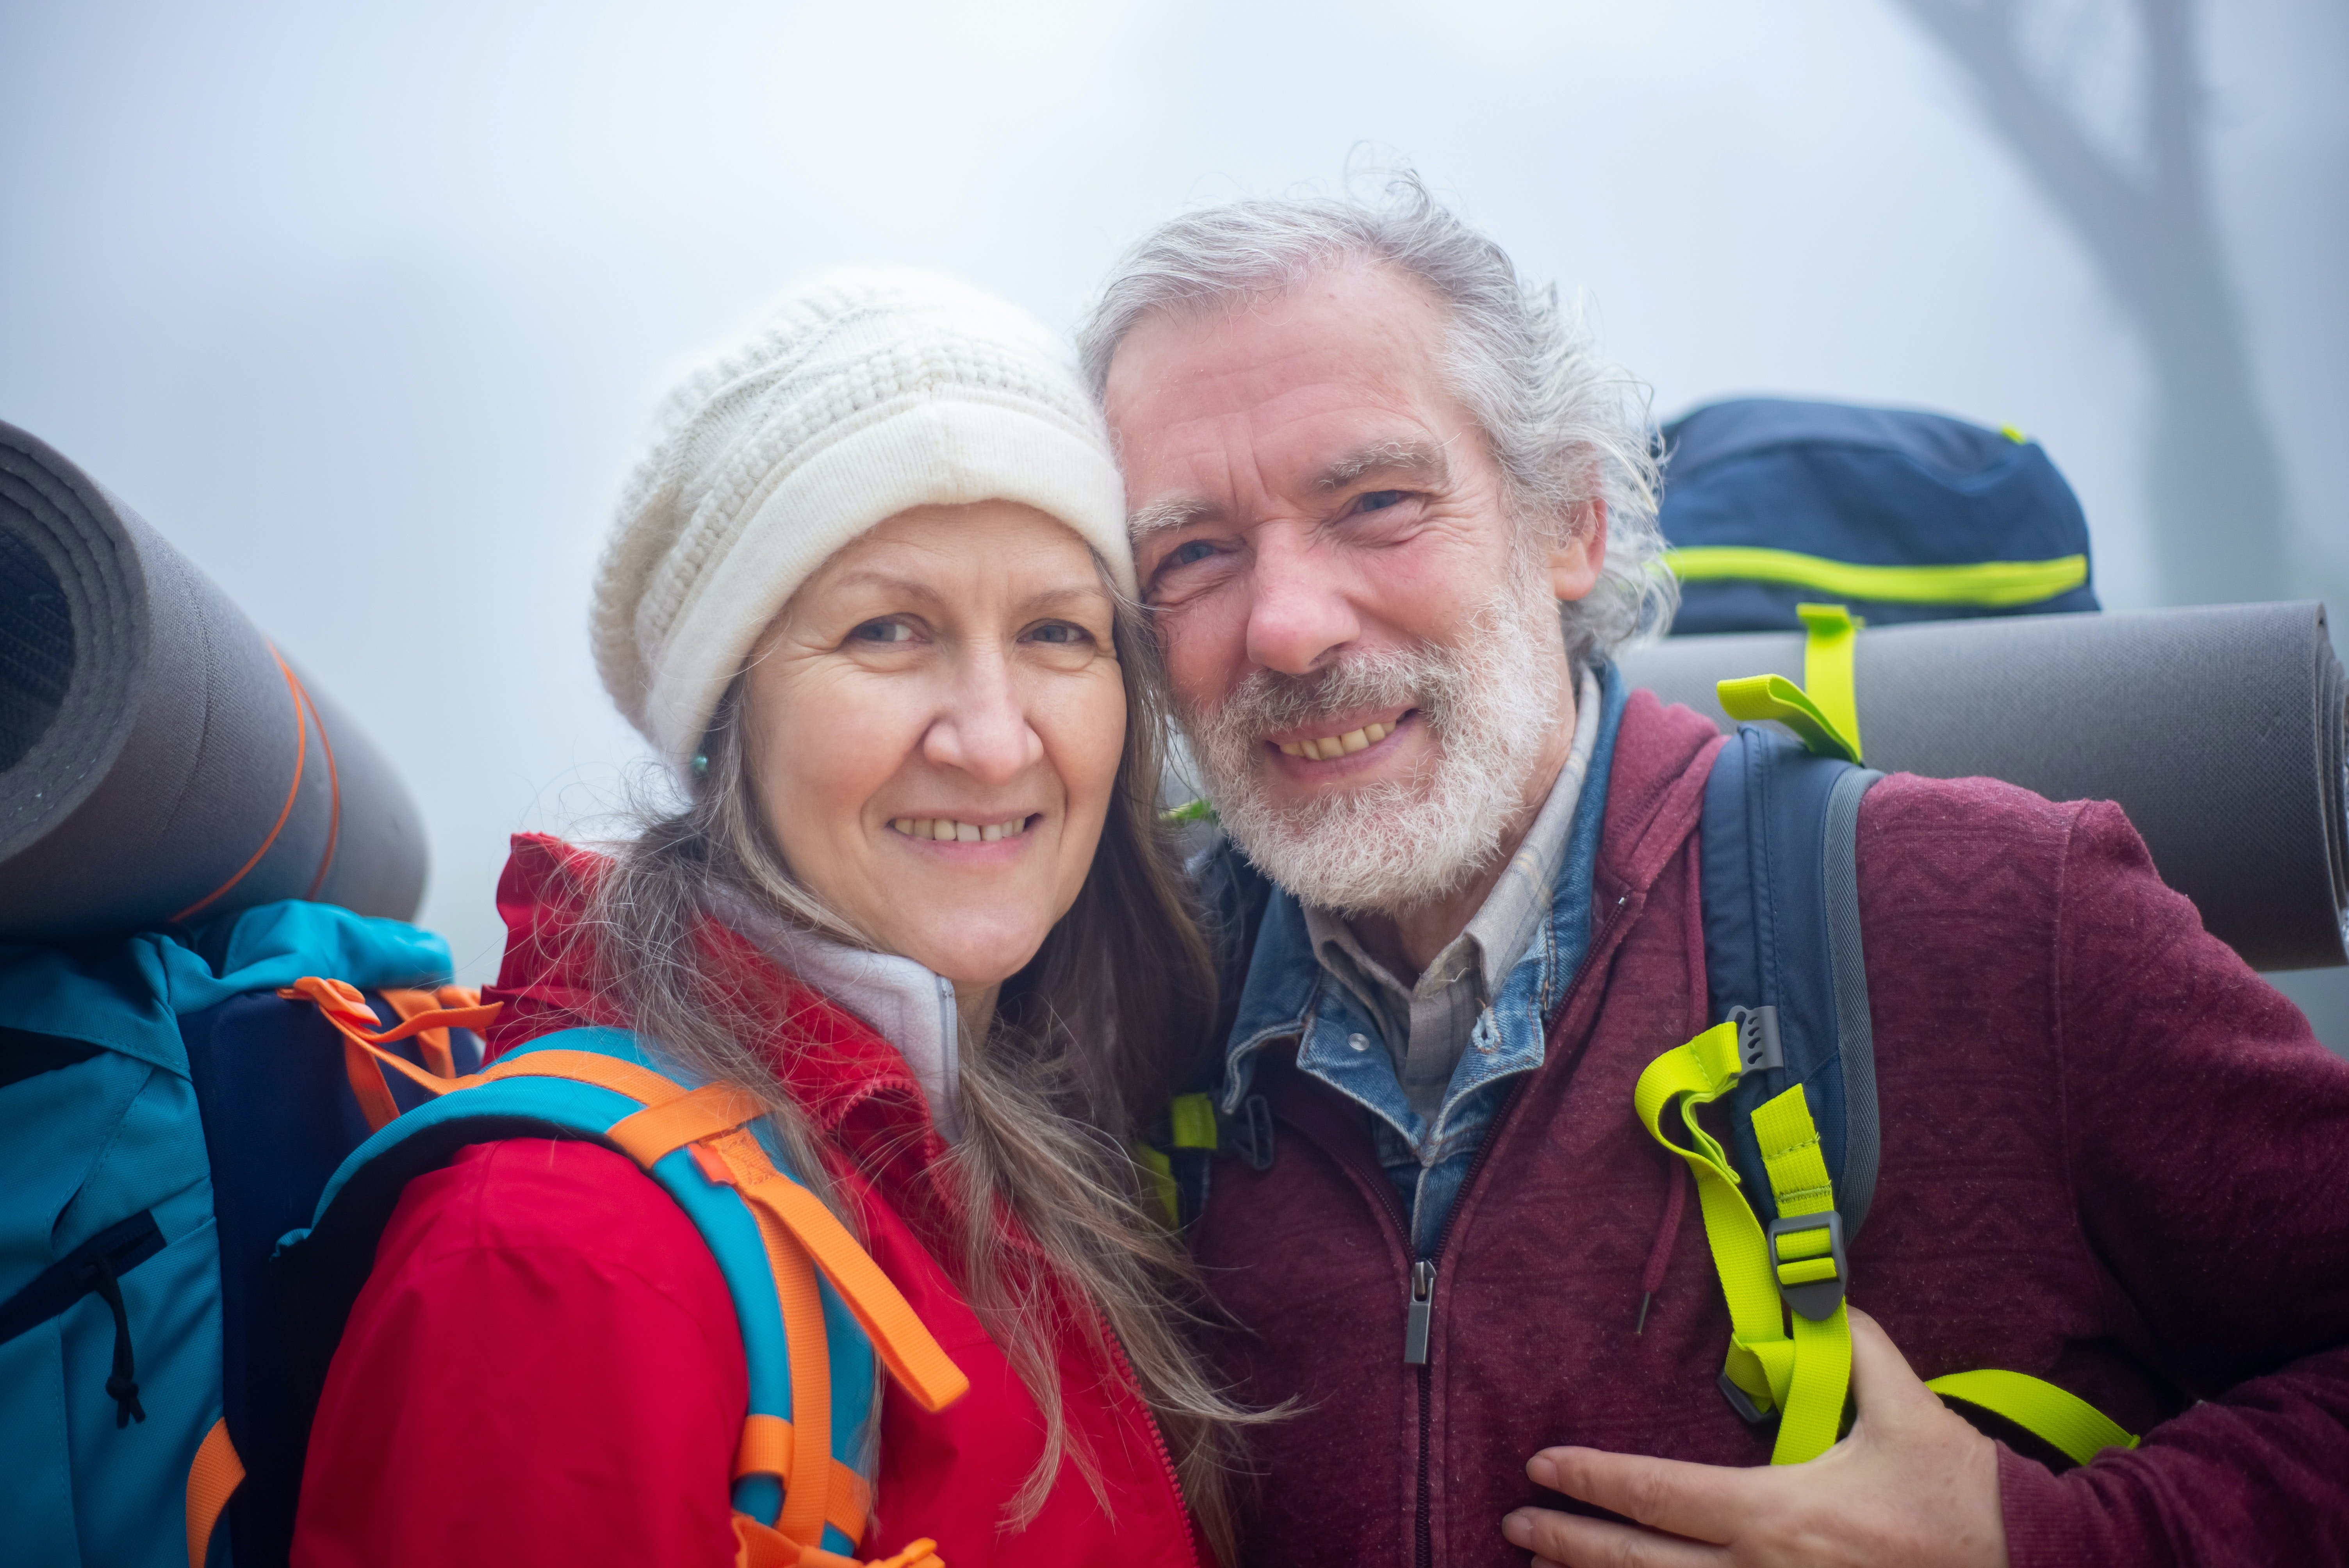 Smiling senior couple on a hike promoting dental care for pensioners